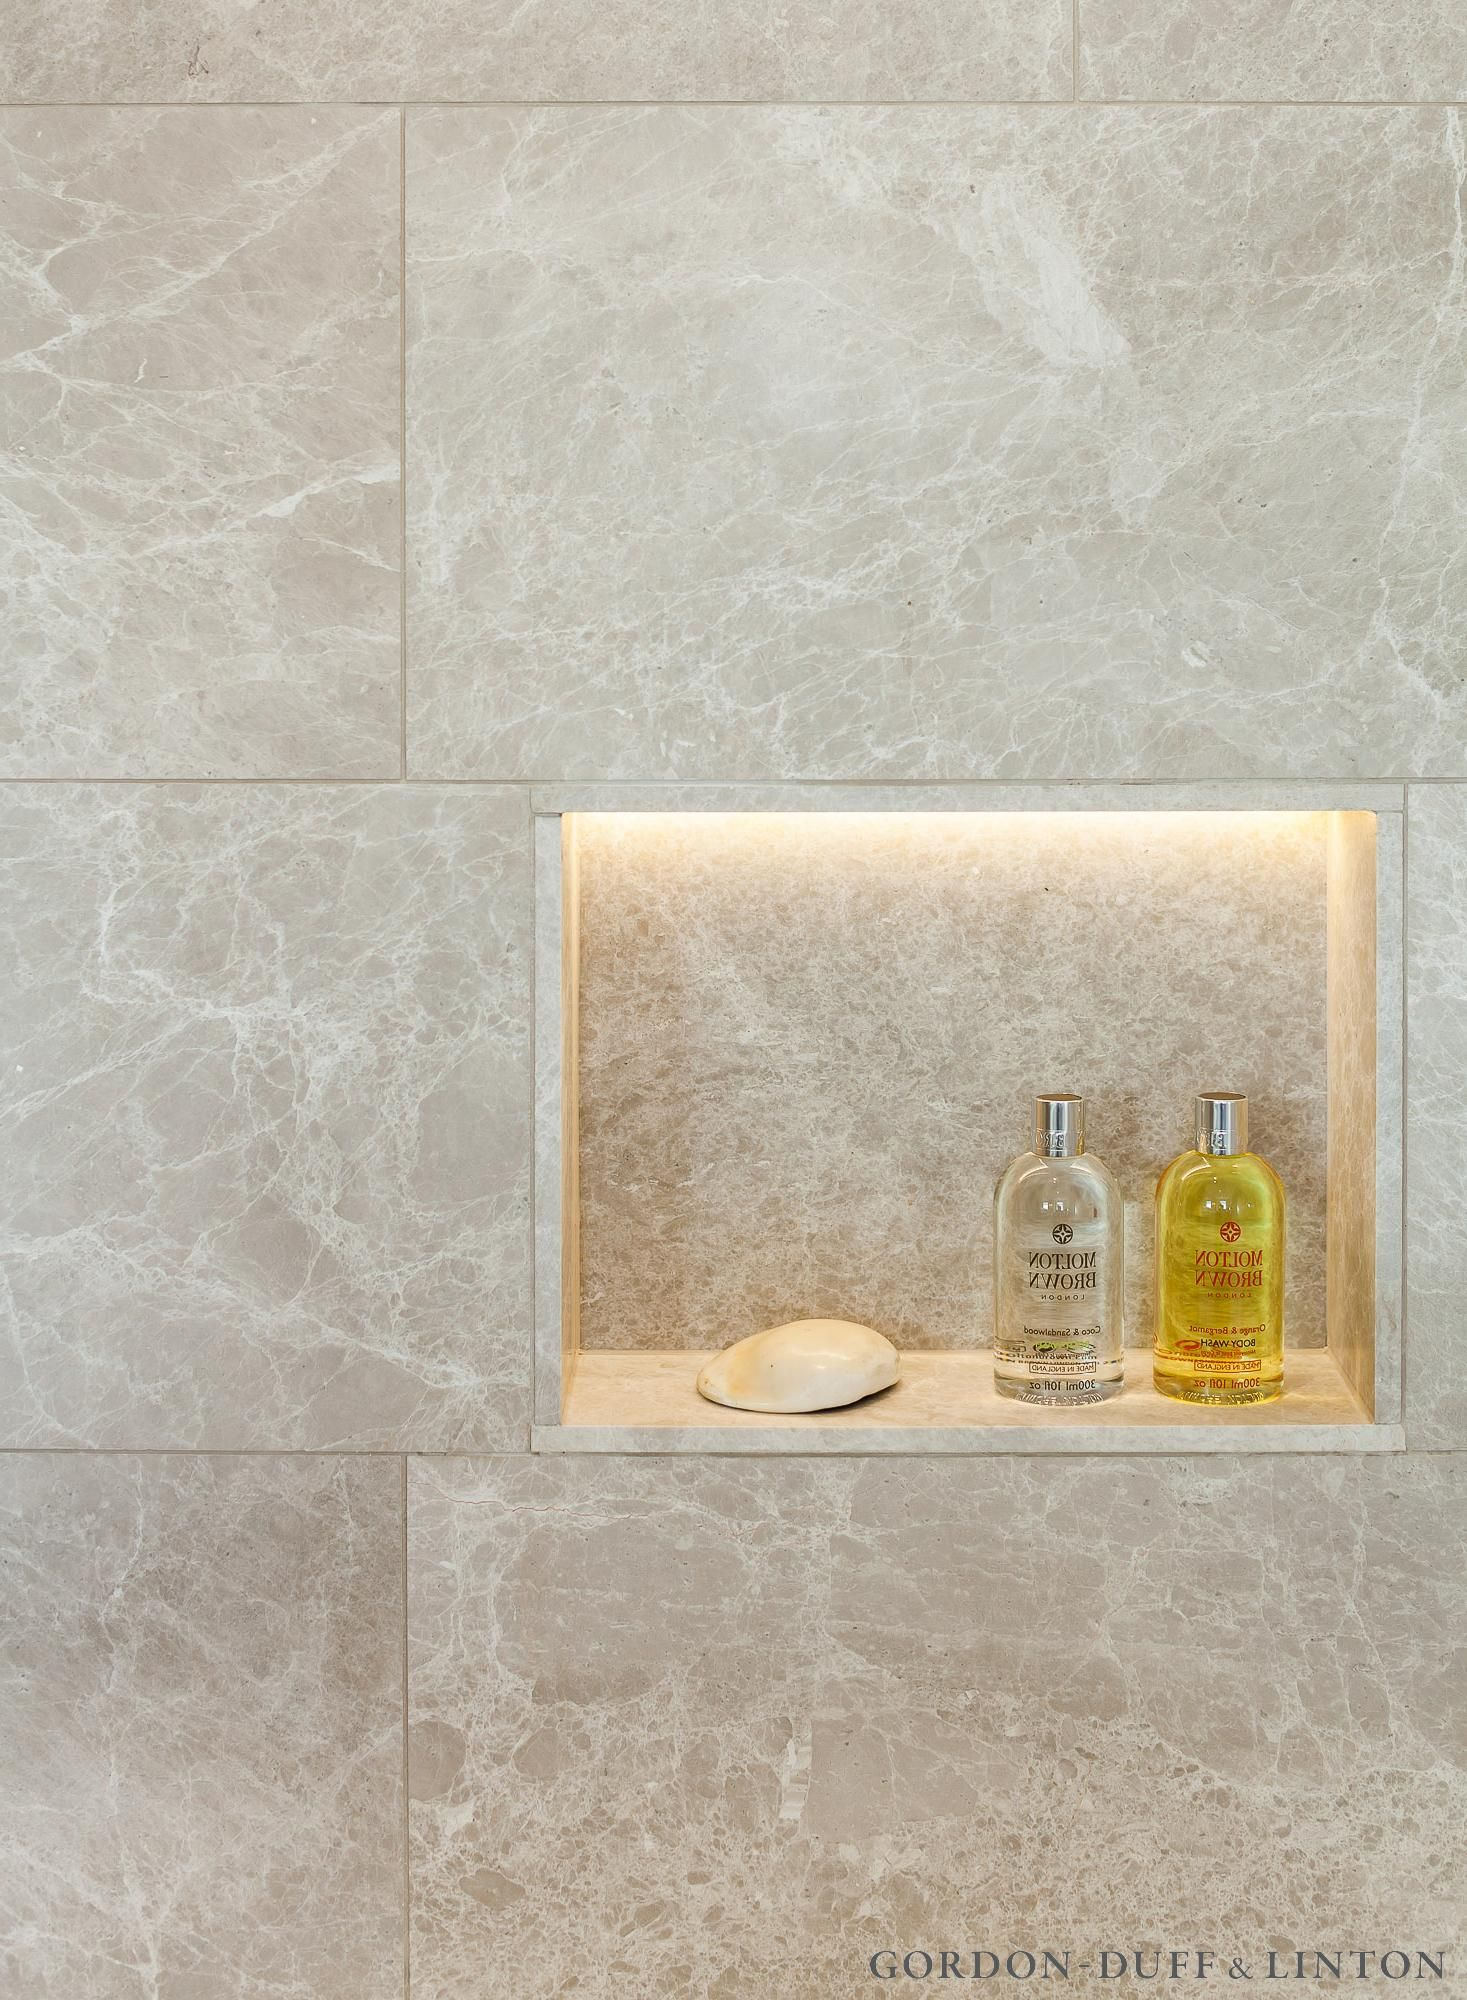 Bathroom shower lights - Natural Stone Marble Tiles In Bathroom Shower Niche With Led Lighting Detail